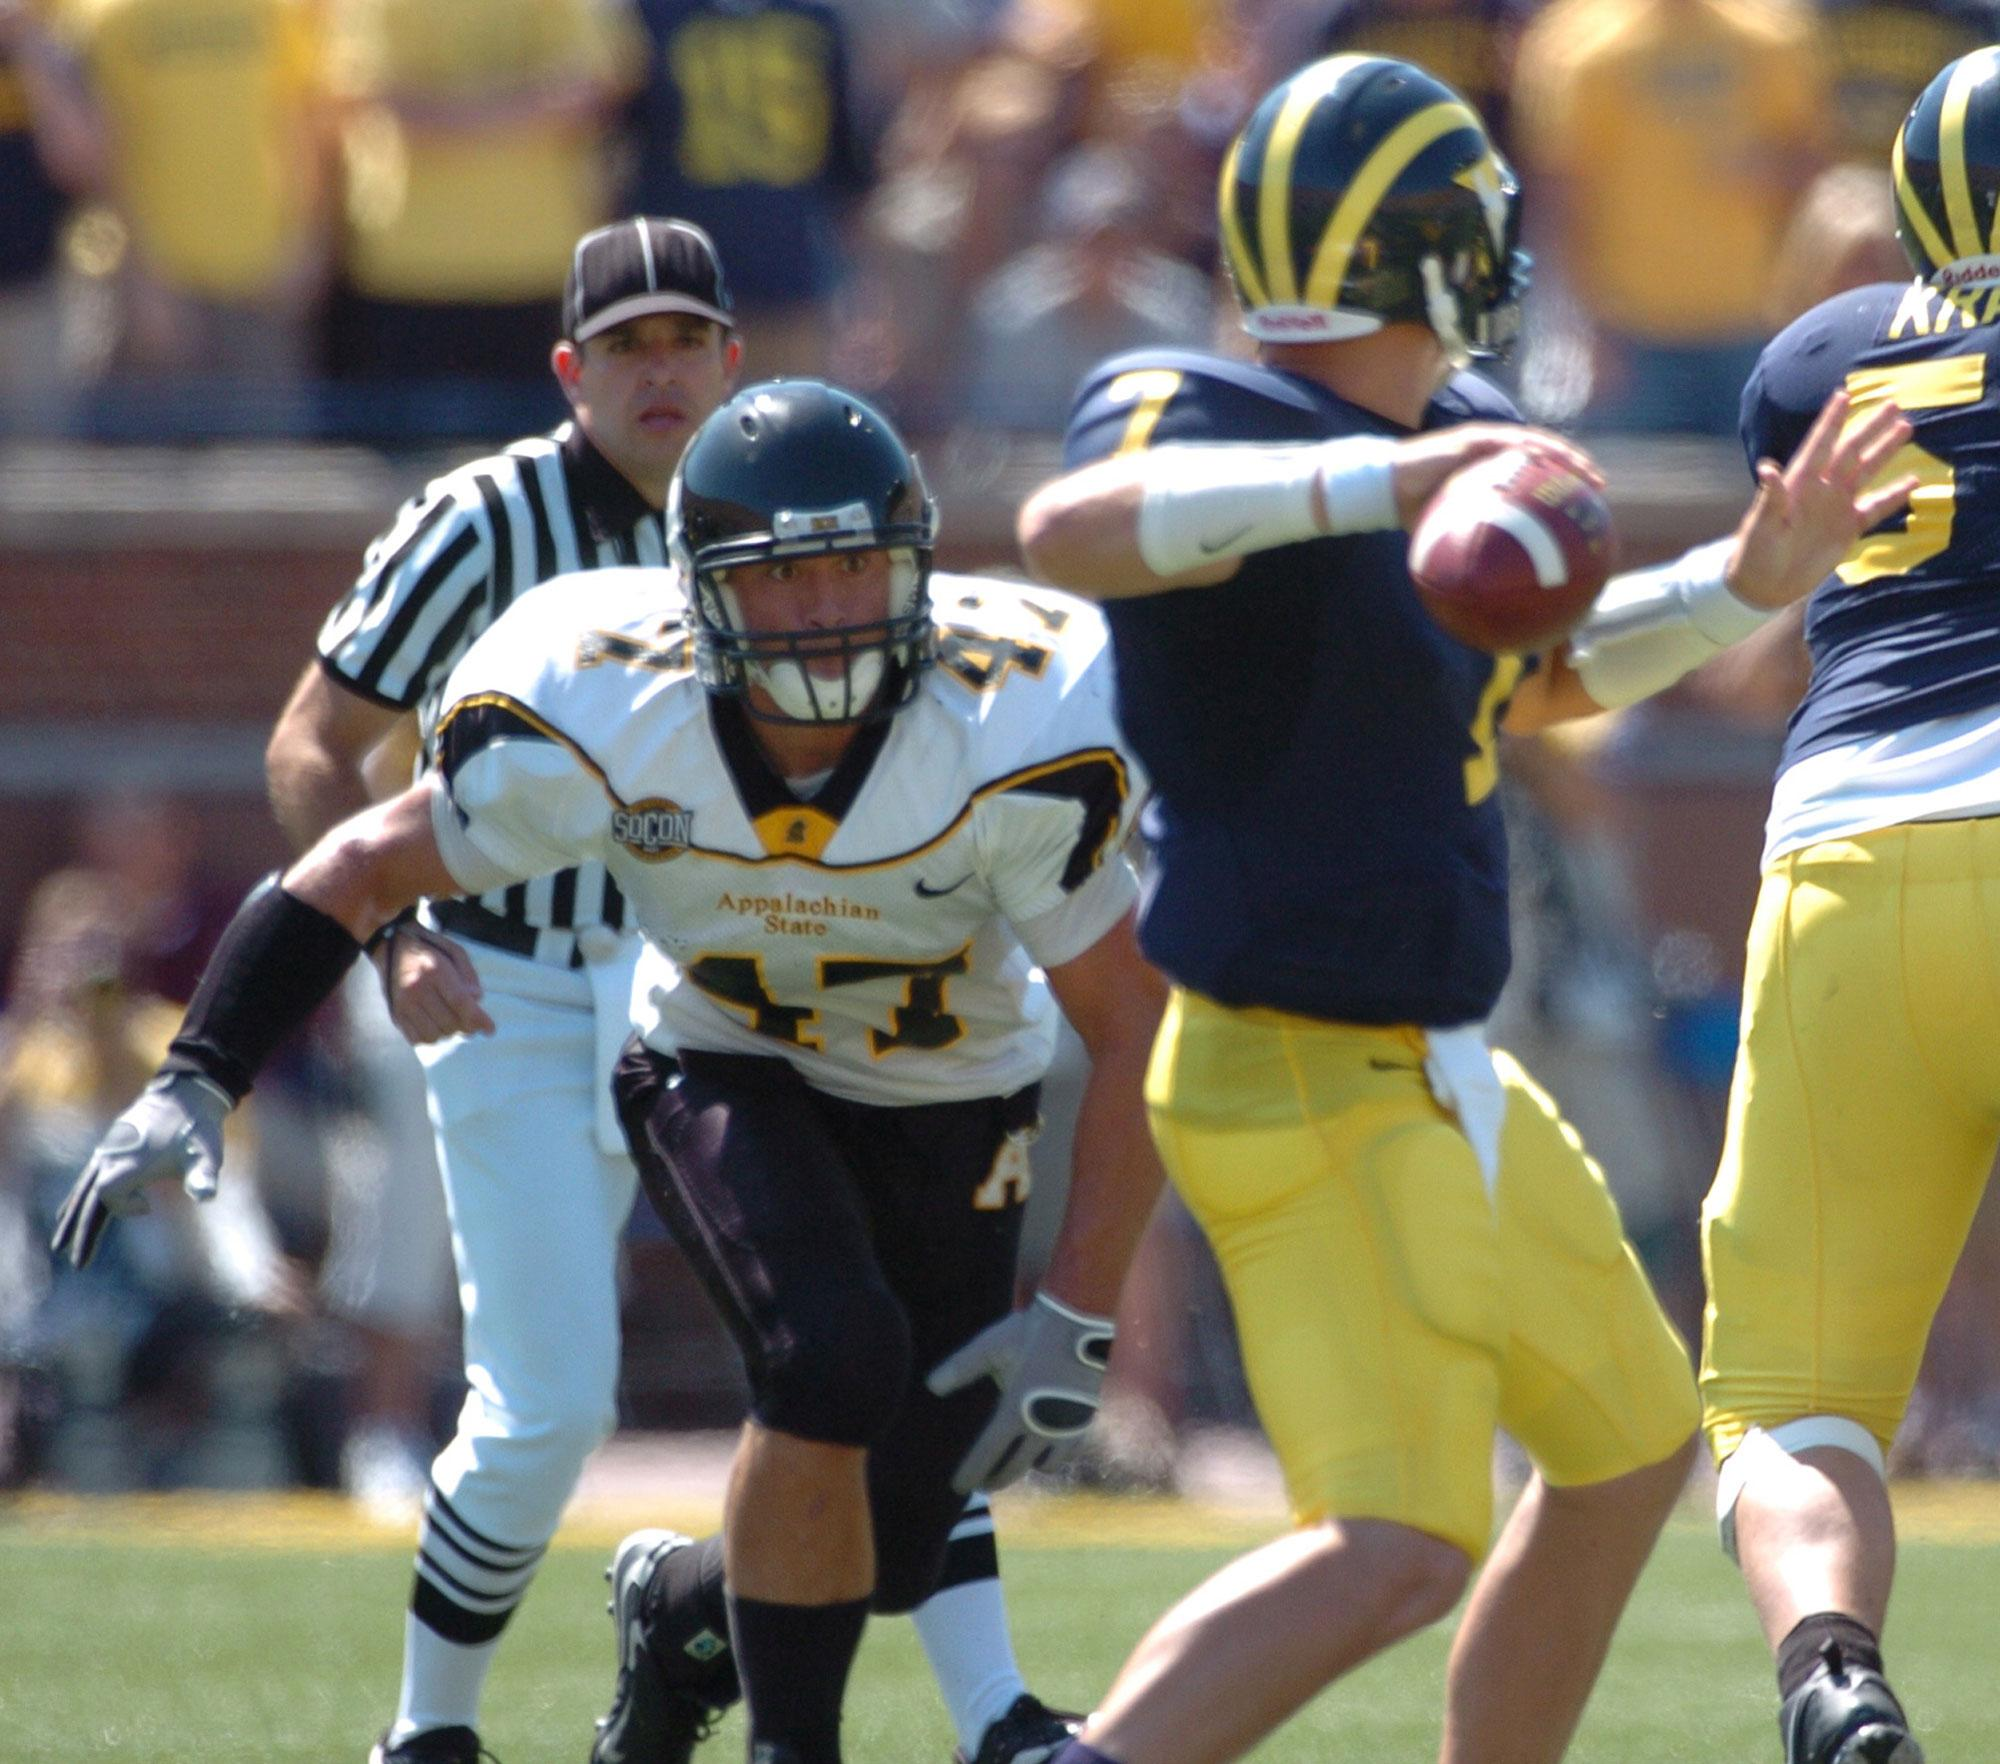 Senior+defensive+back+Corey+Lynch+pressures+Michigan+quarterback+Chad+Henne+during+the+App-Michigan+game+on+September+1%2C+2007.+%0APhoto+courtesy%3A+App+State+athletics+